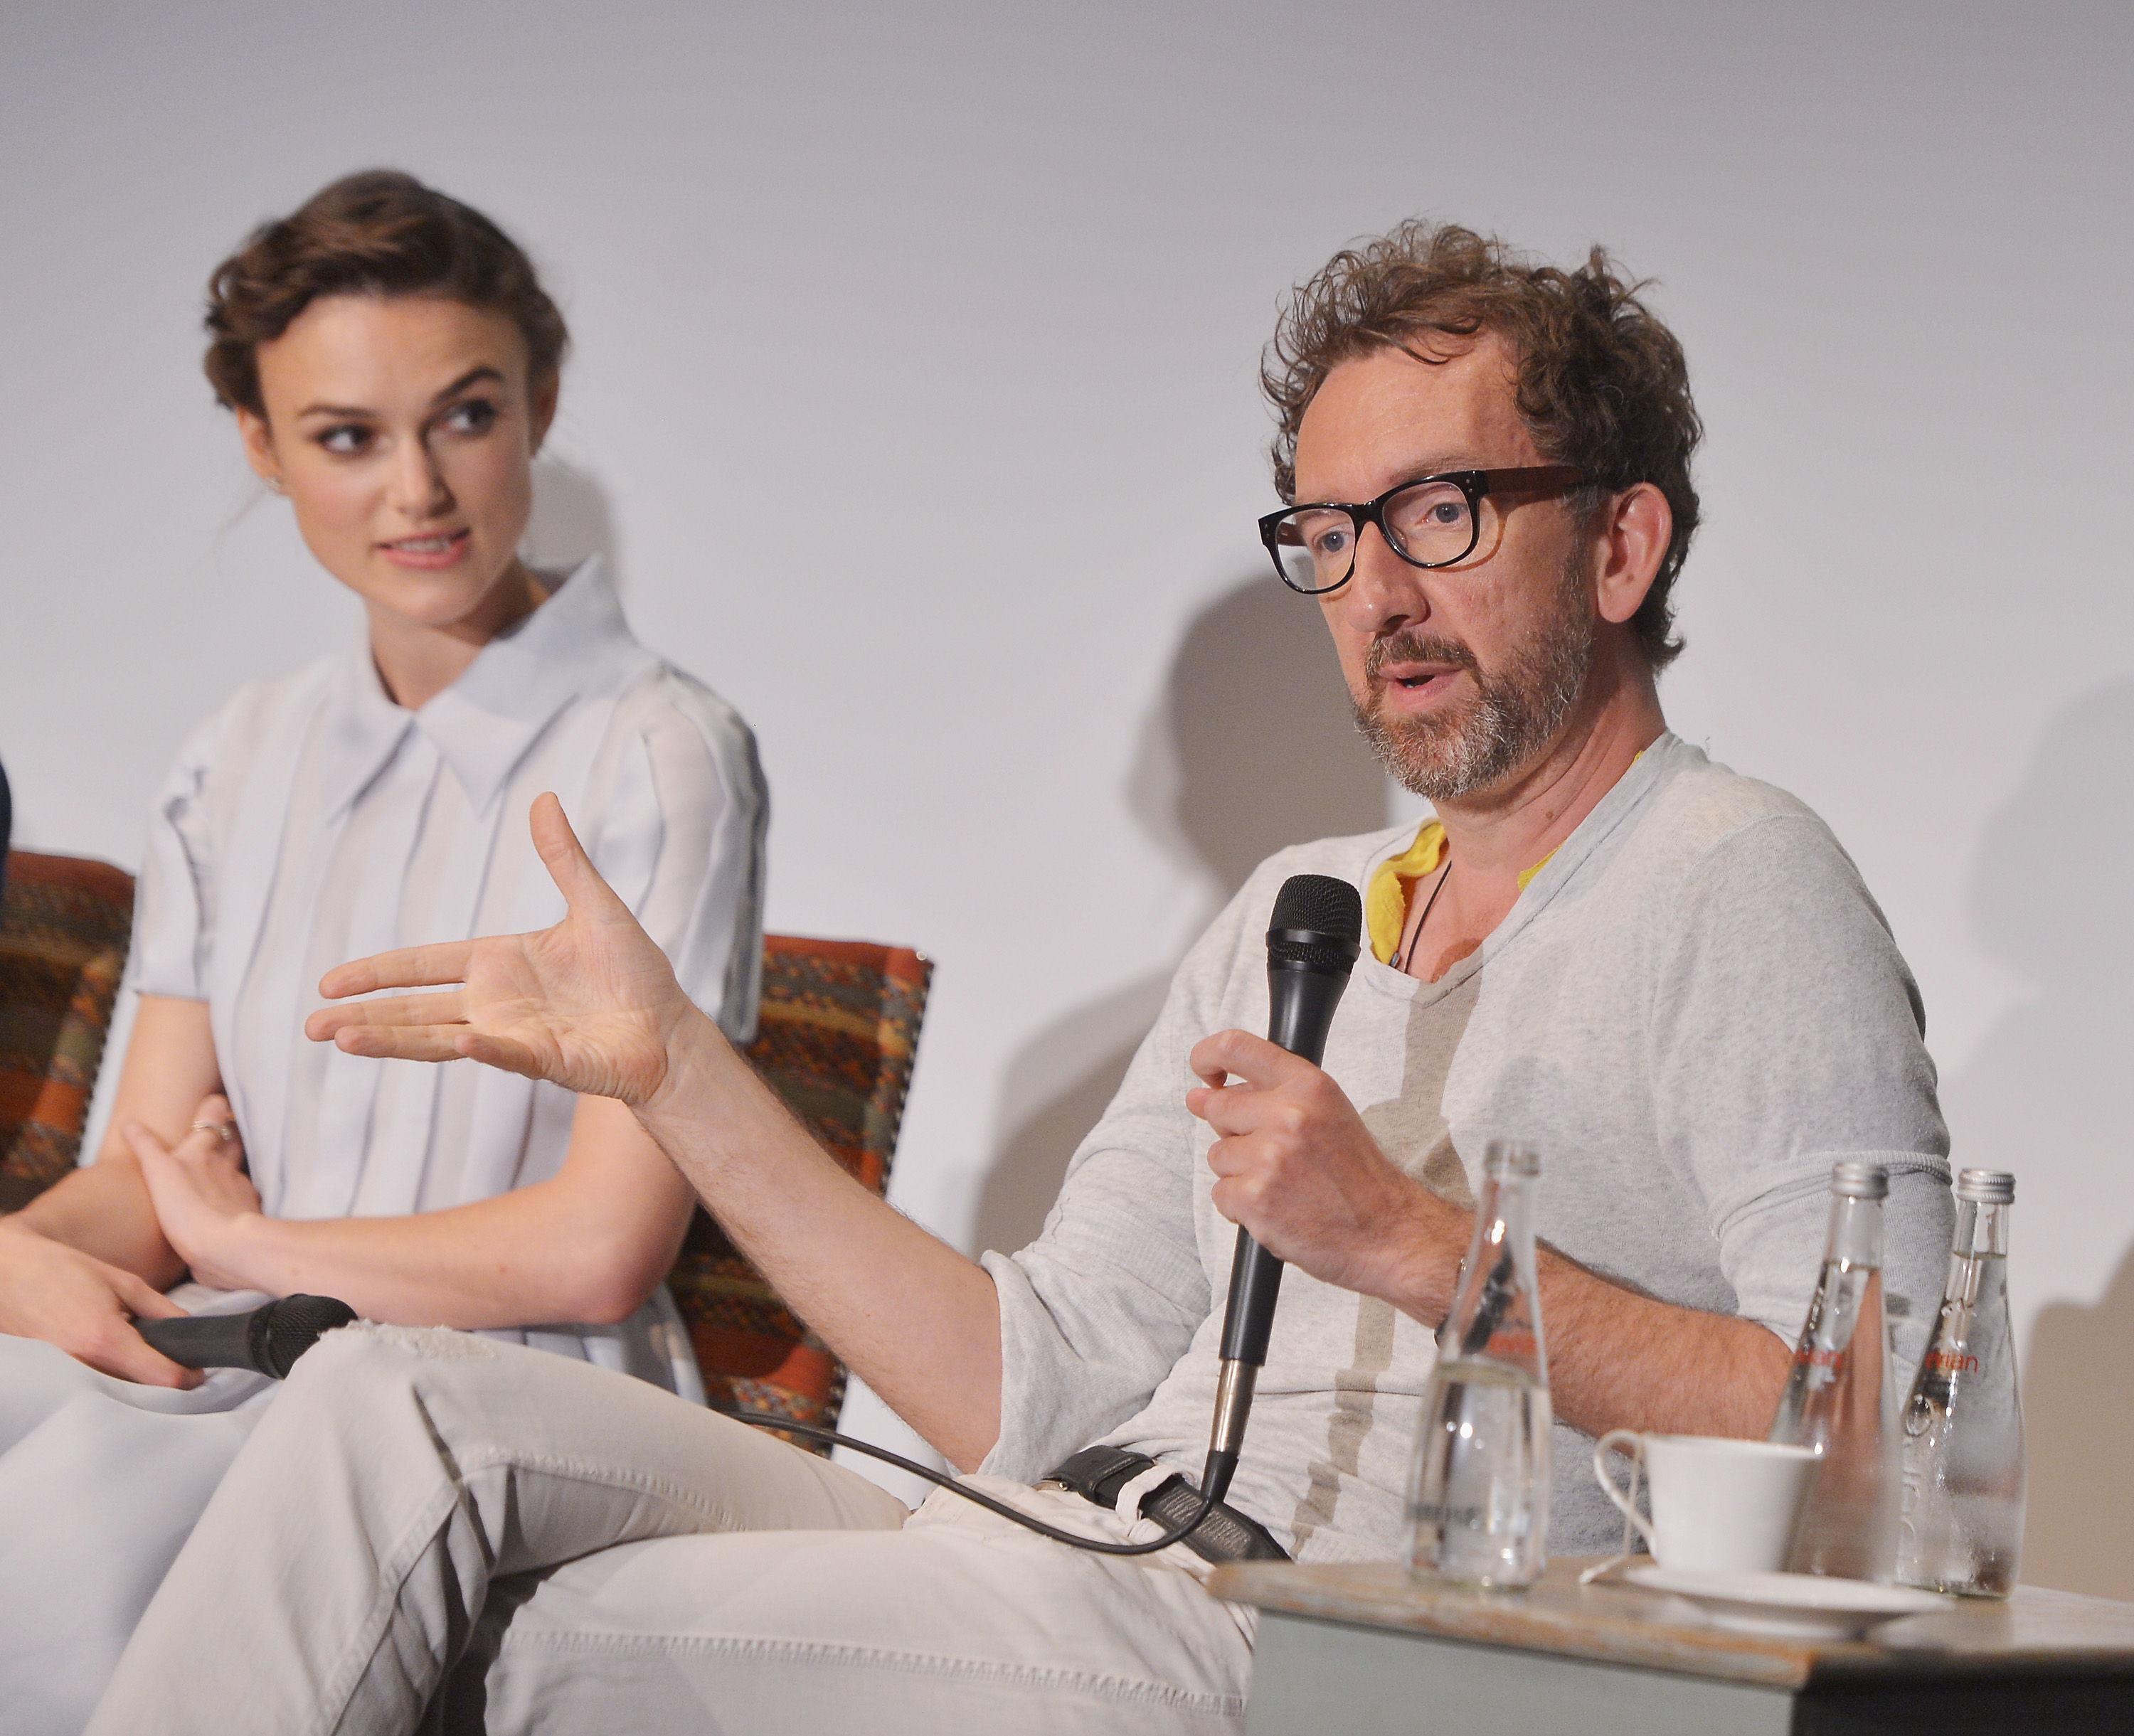 Actress Keira Knightley and writer/director John Carney attend the 'Begin Again' press conference at Crosby Street Hotel on June 26, 2014 in New York City.